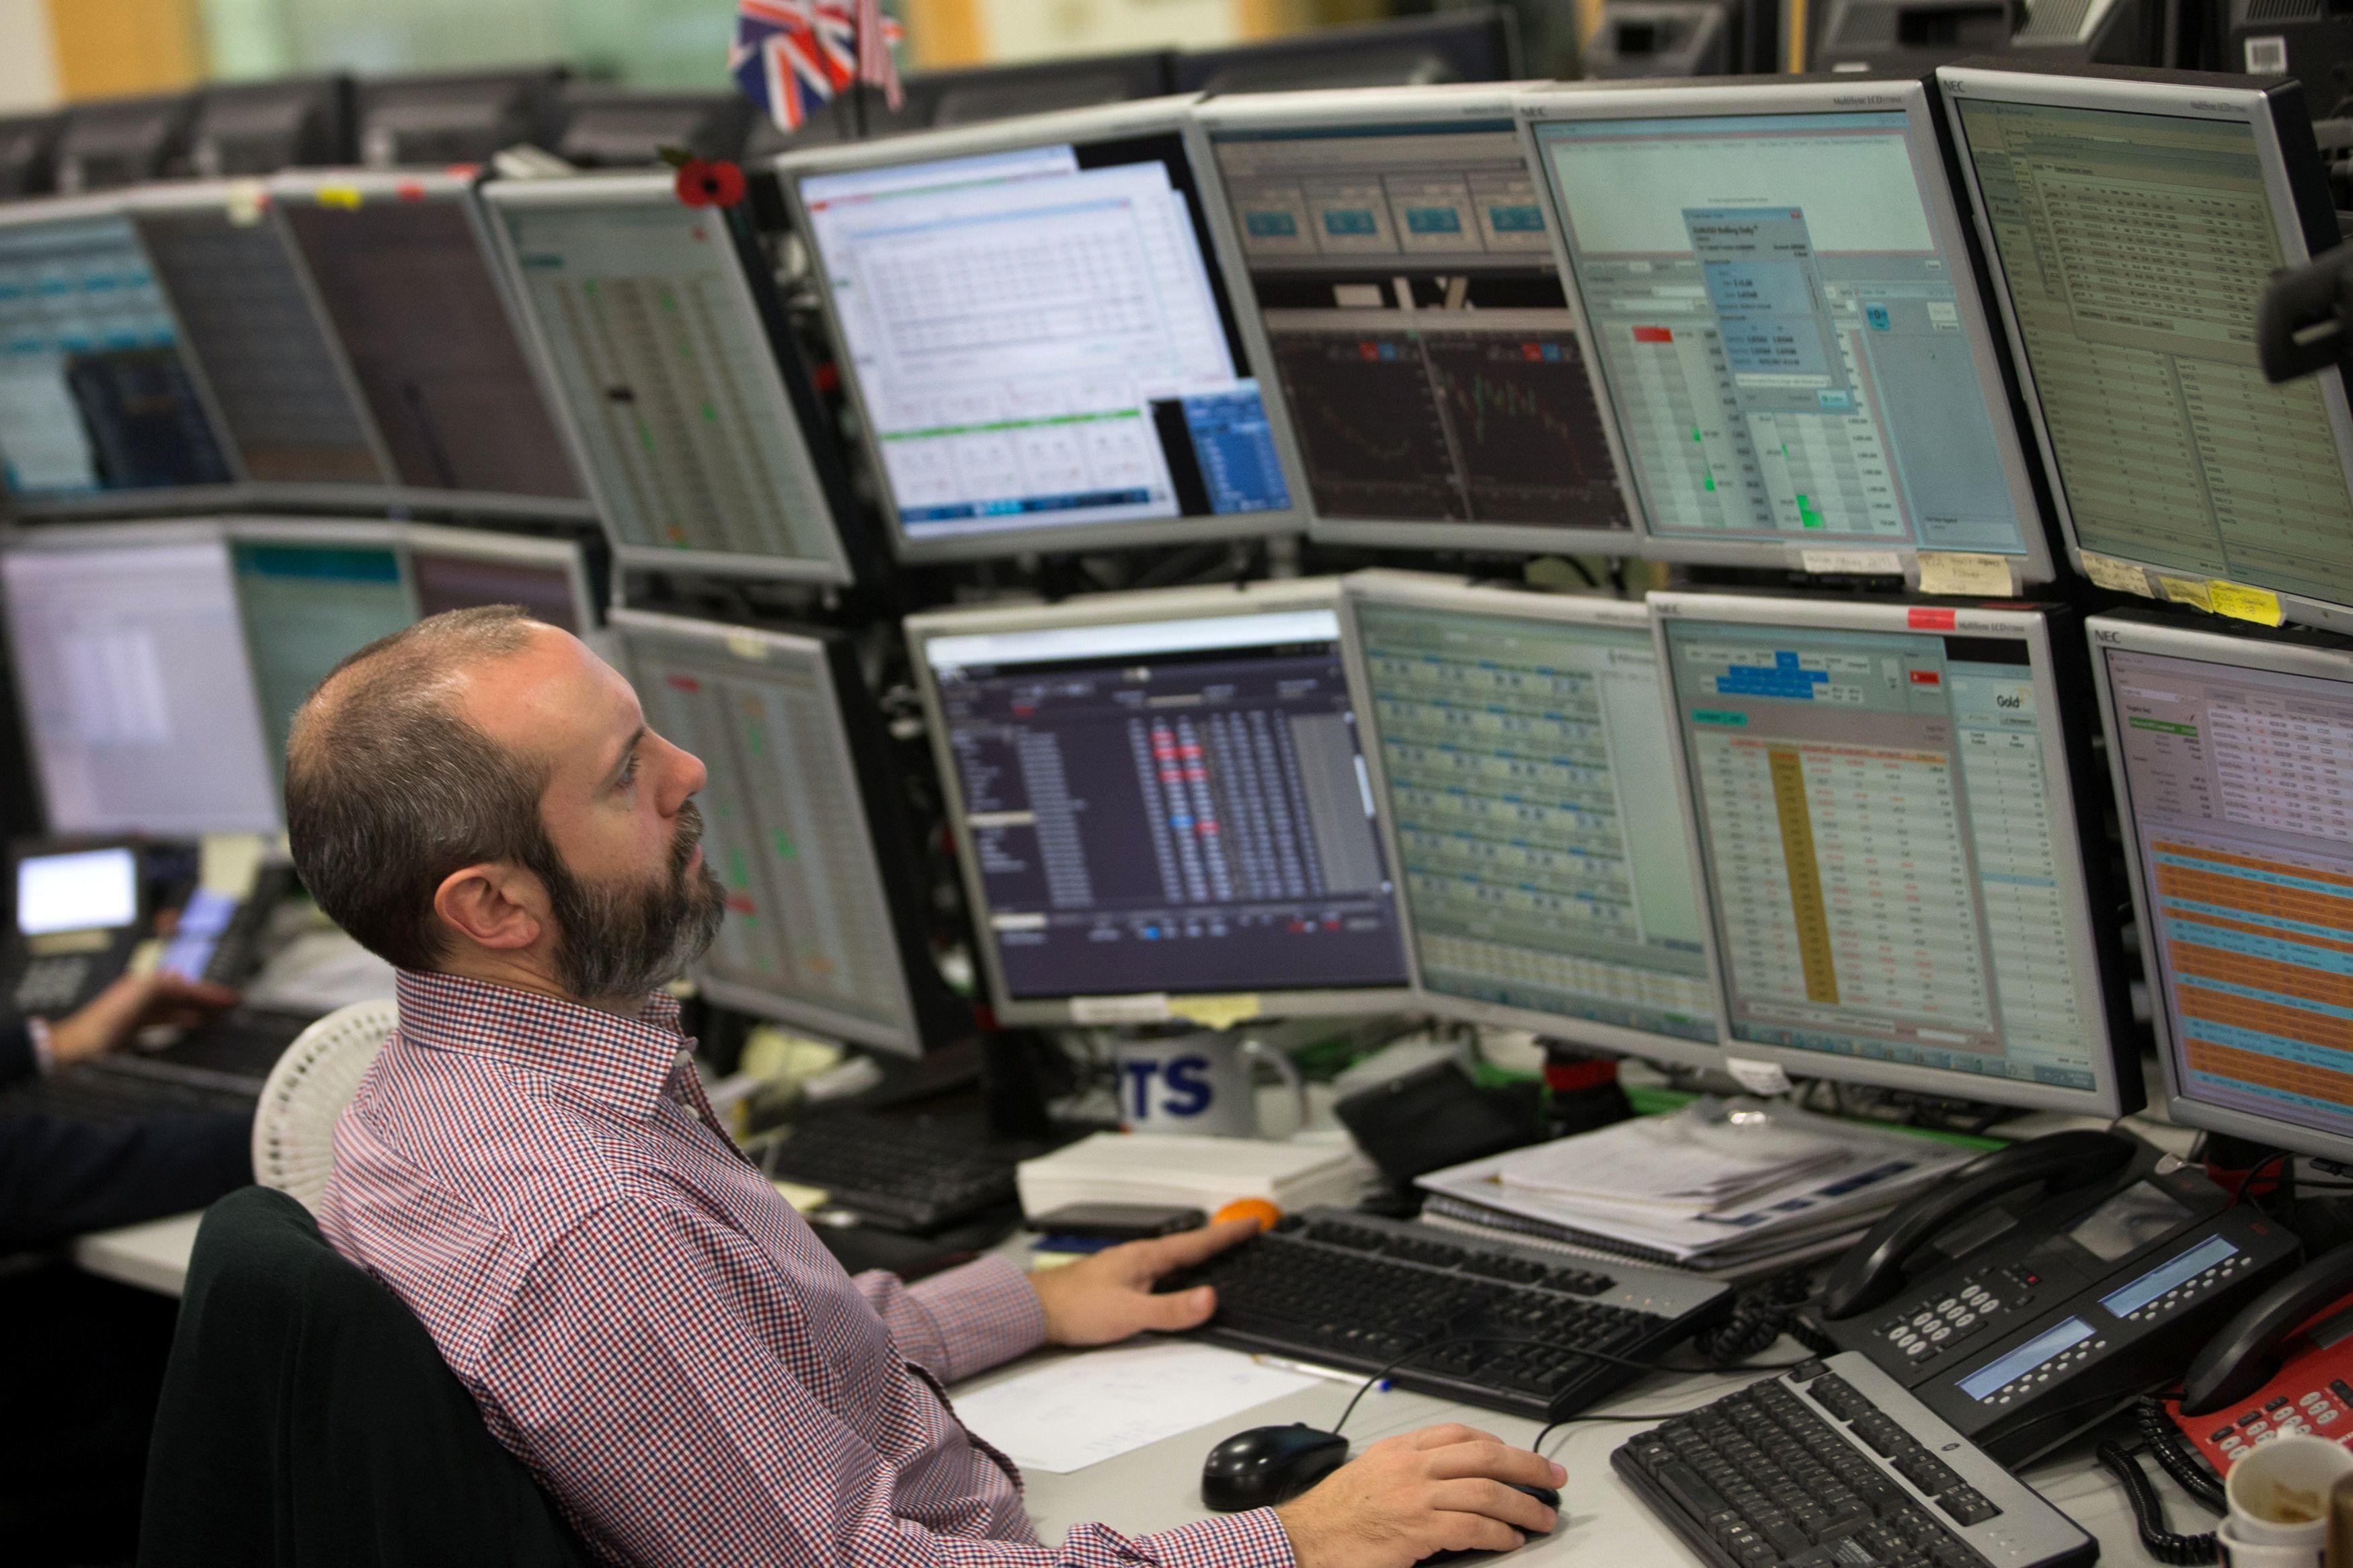 FTSE 100 Falls Almost 200 Points After Dow Jones' Huge Single-Day